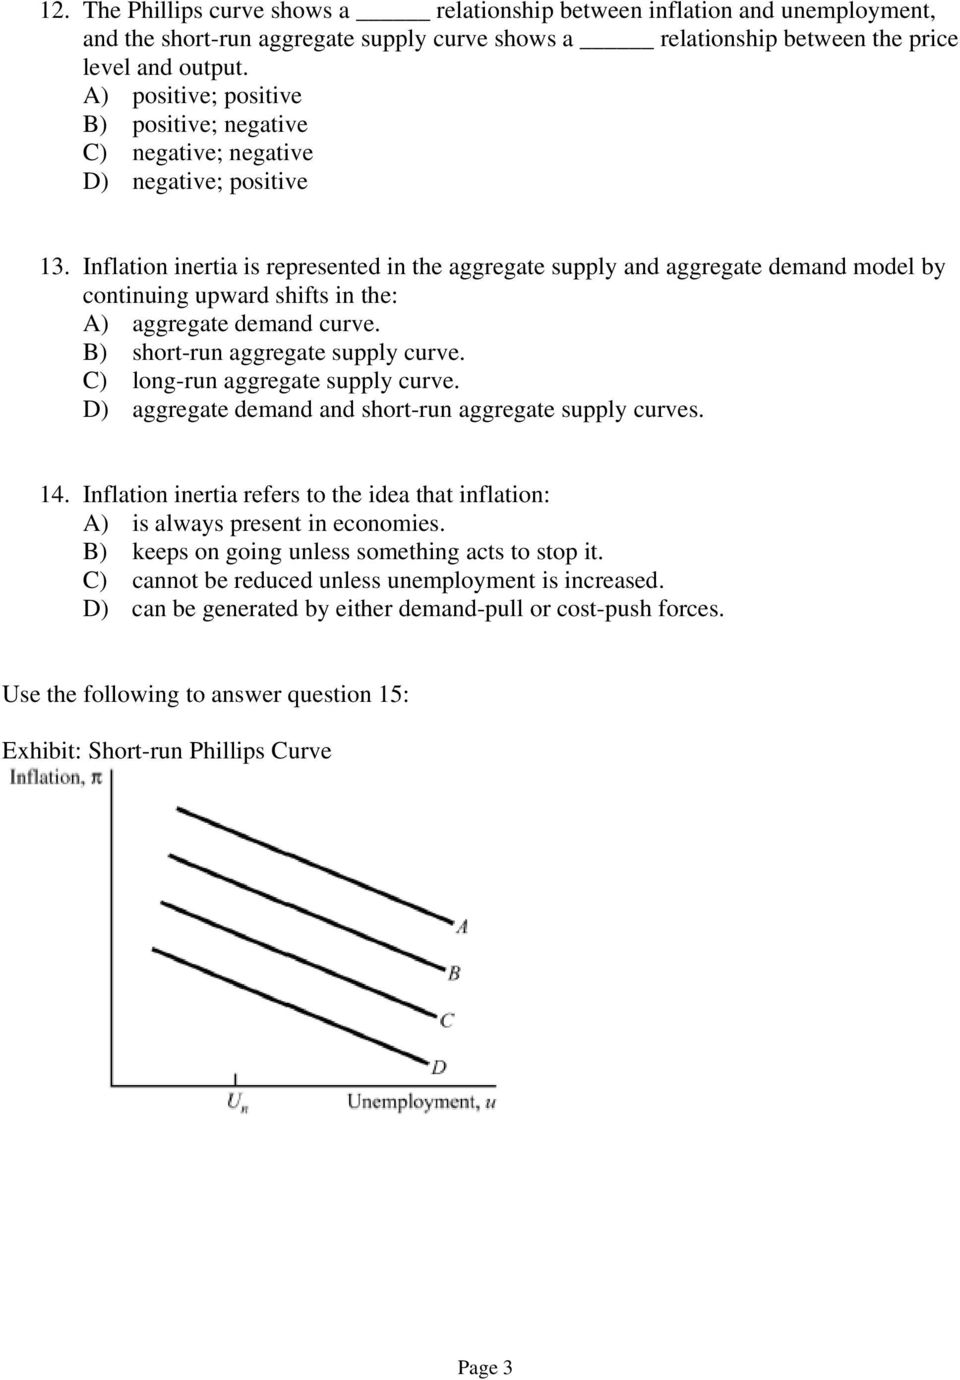 Inflation inertia is represented in the aggregate supply and aggregate demand model by continuing upward shifts in the: A) aggregate demand curve. B) short-run aggregate supply curve.